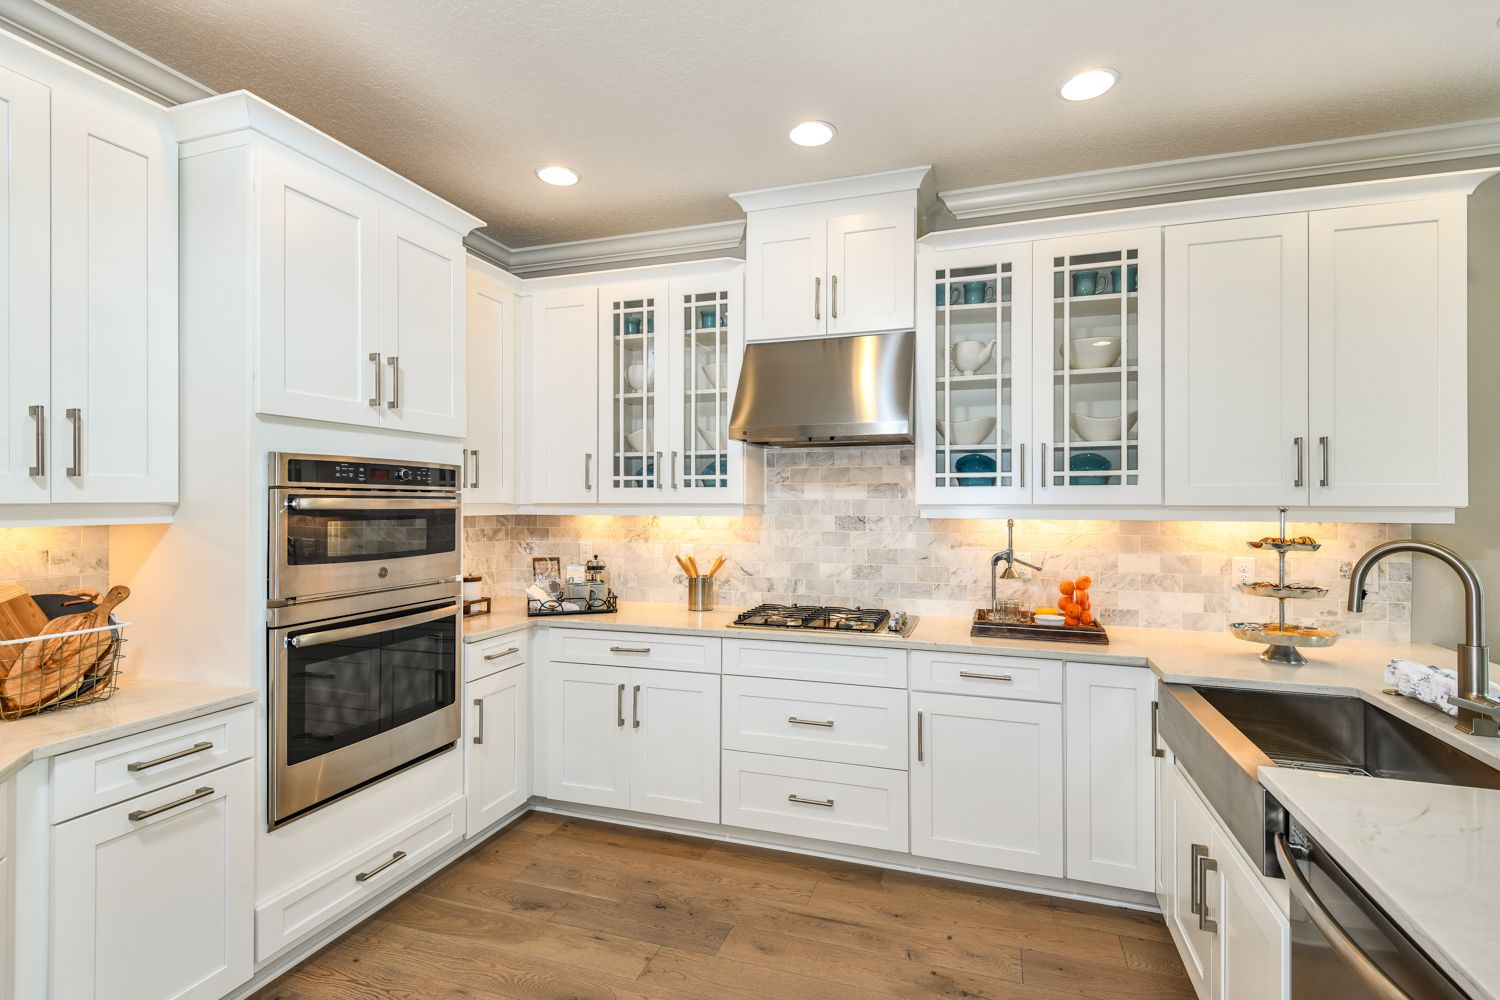 See What S Cookin With Taylormorrison Kitchendesign Dreamkitchen Lastchance Closeout Seminole Realest Kitchen Design Dream Kitchen Wellness Design